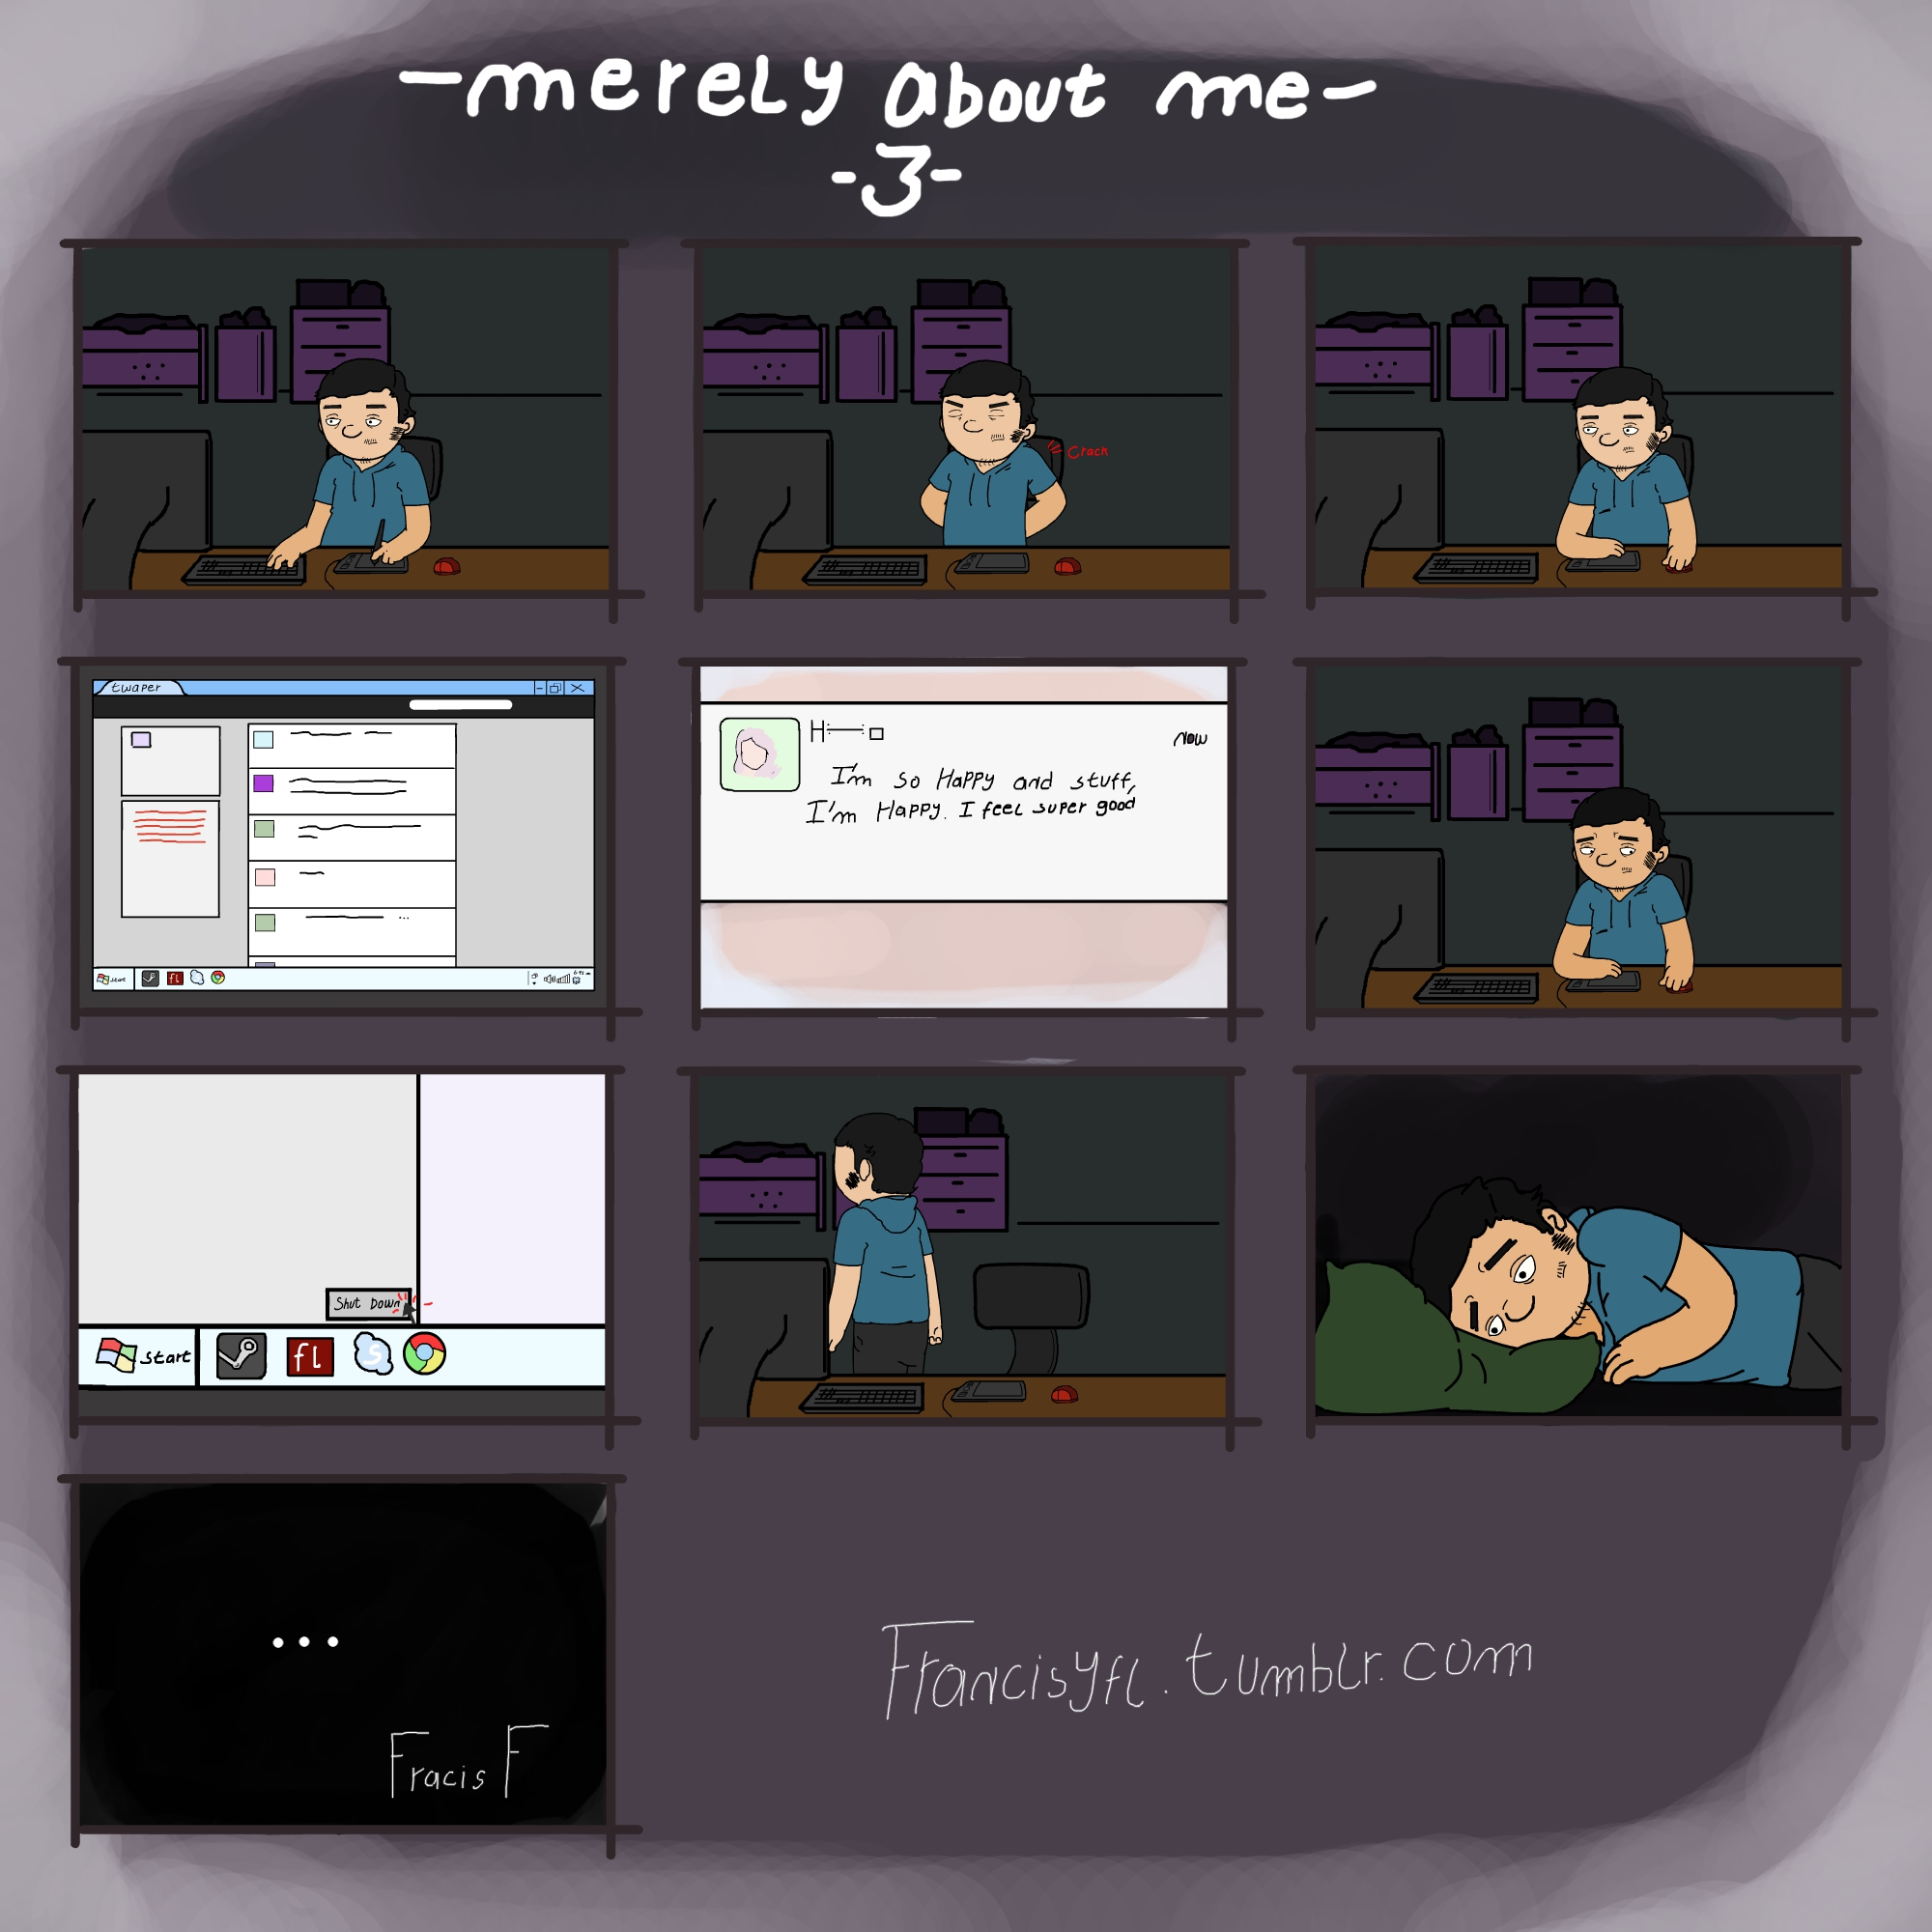 [Comic] Merely about me - 3